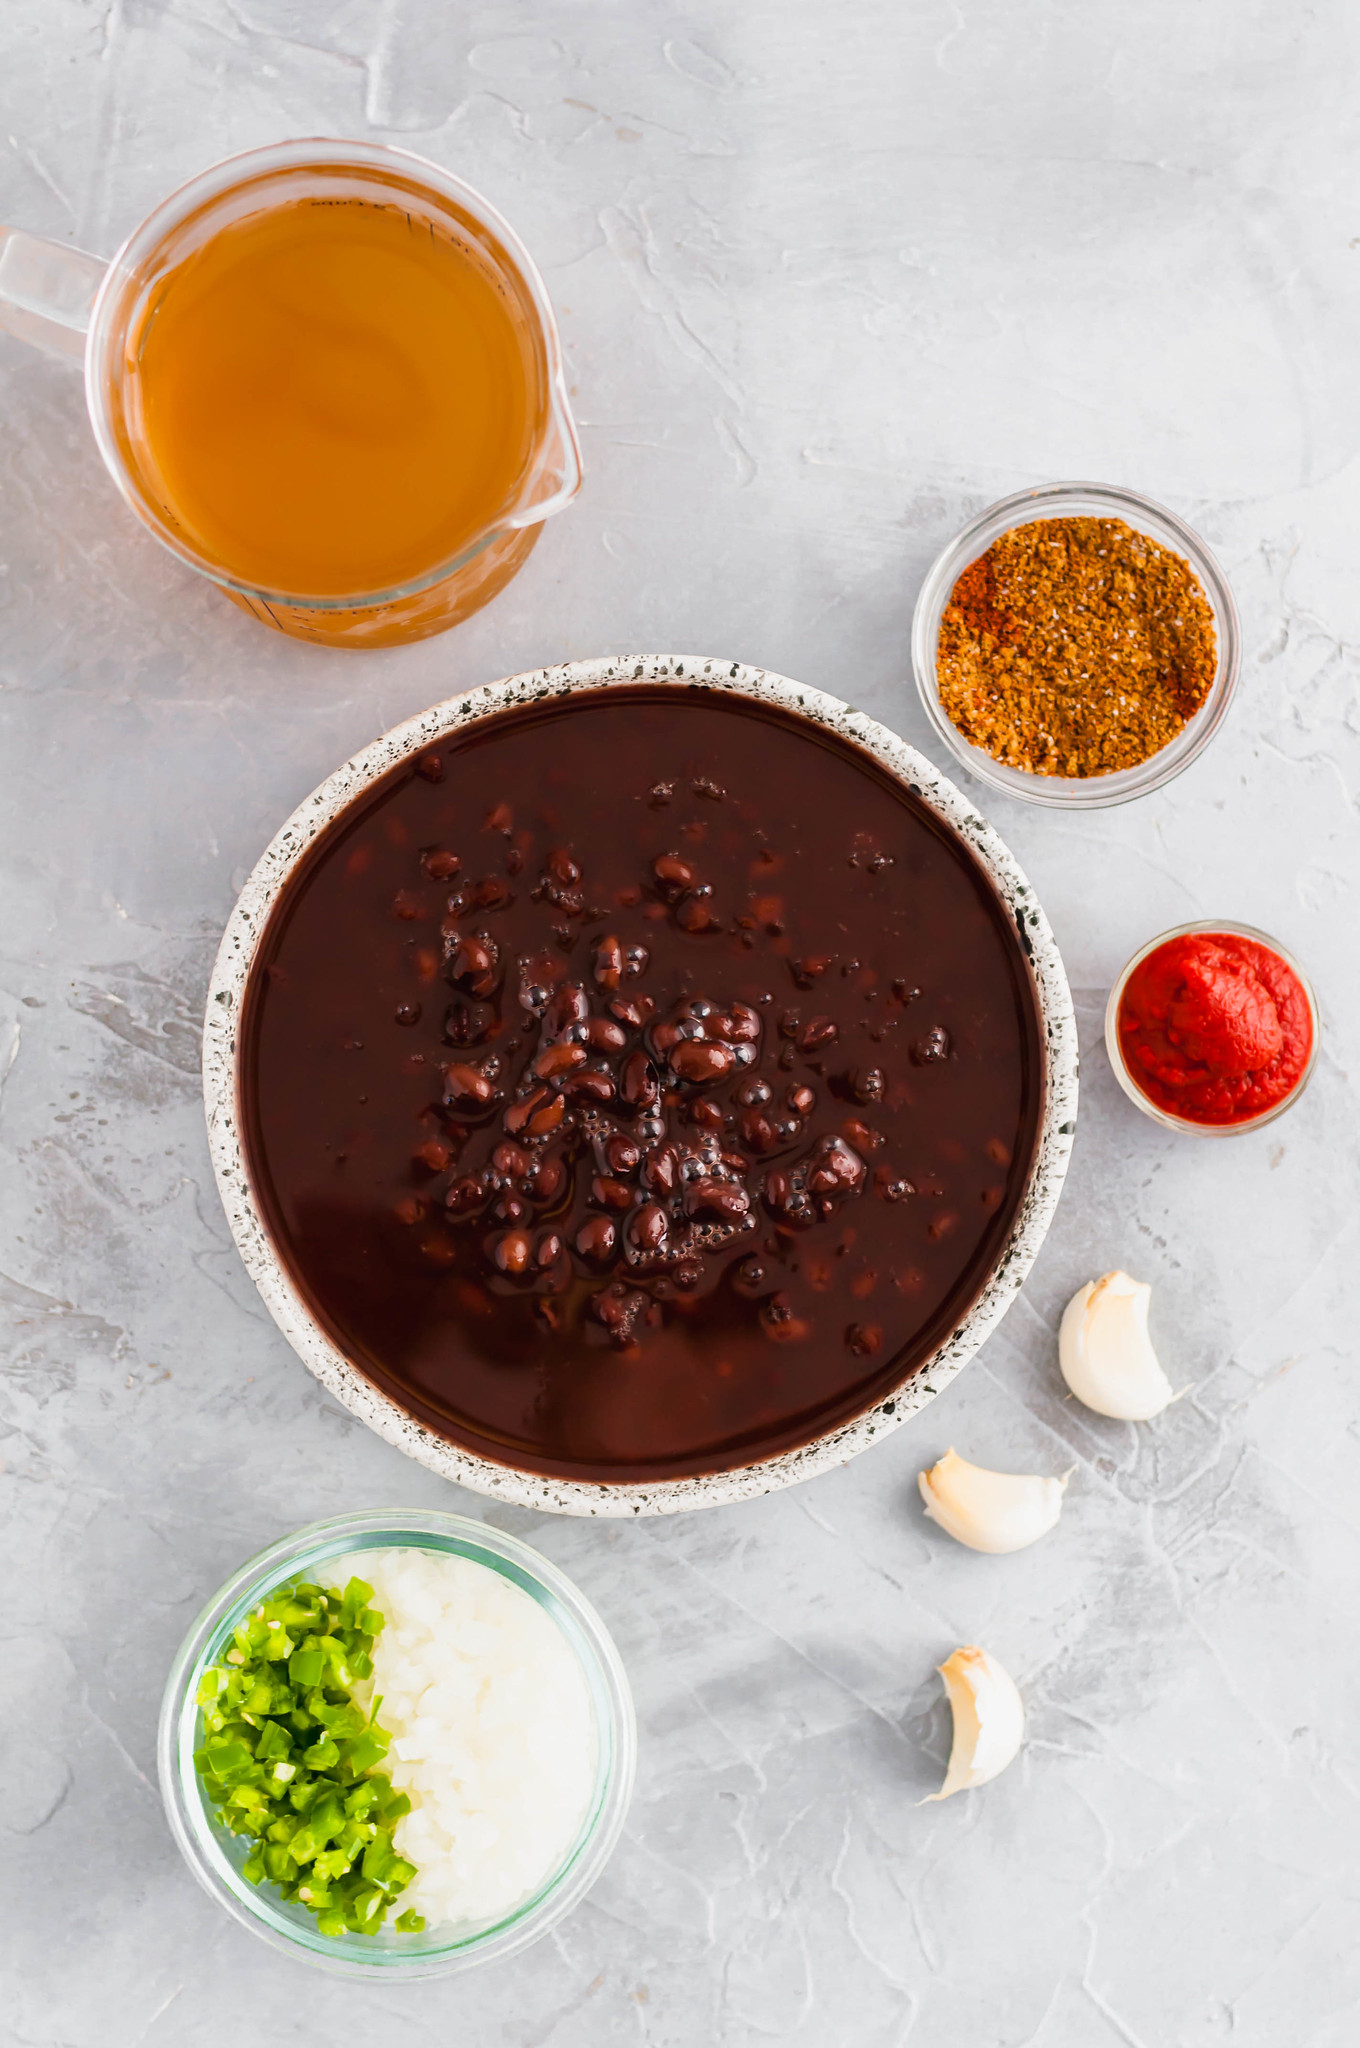 Don't let the falling temperatures bring you down. This Spicy Black Bean Soup is just what you this fall and winter to keep you warm and cozy.